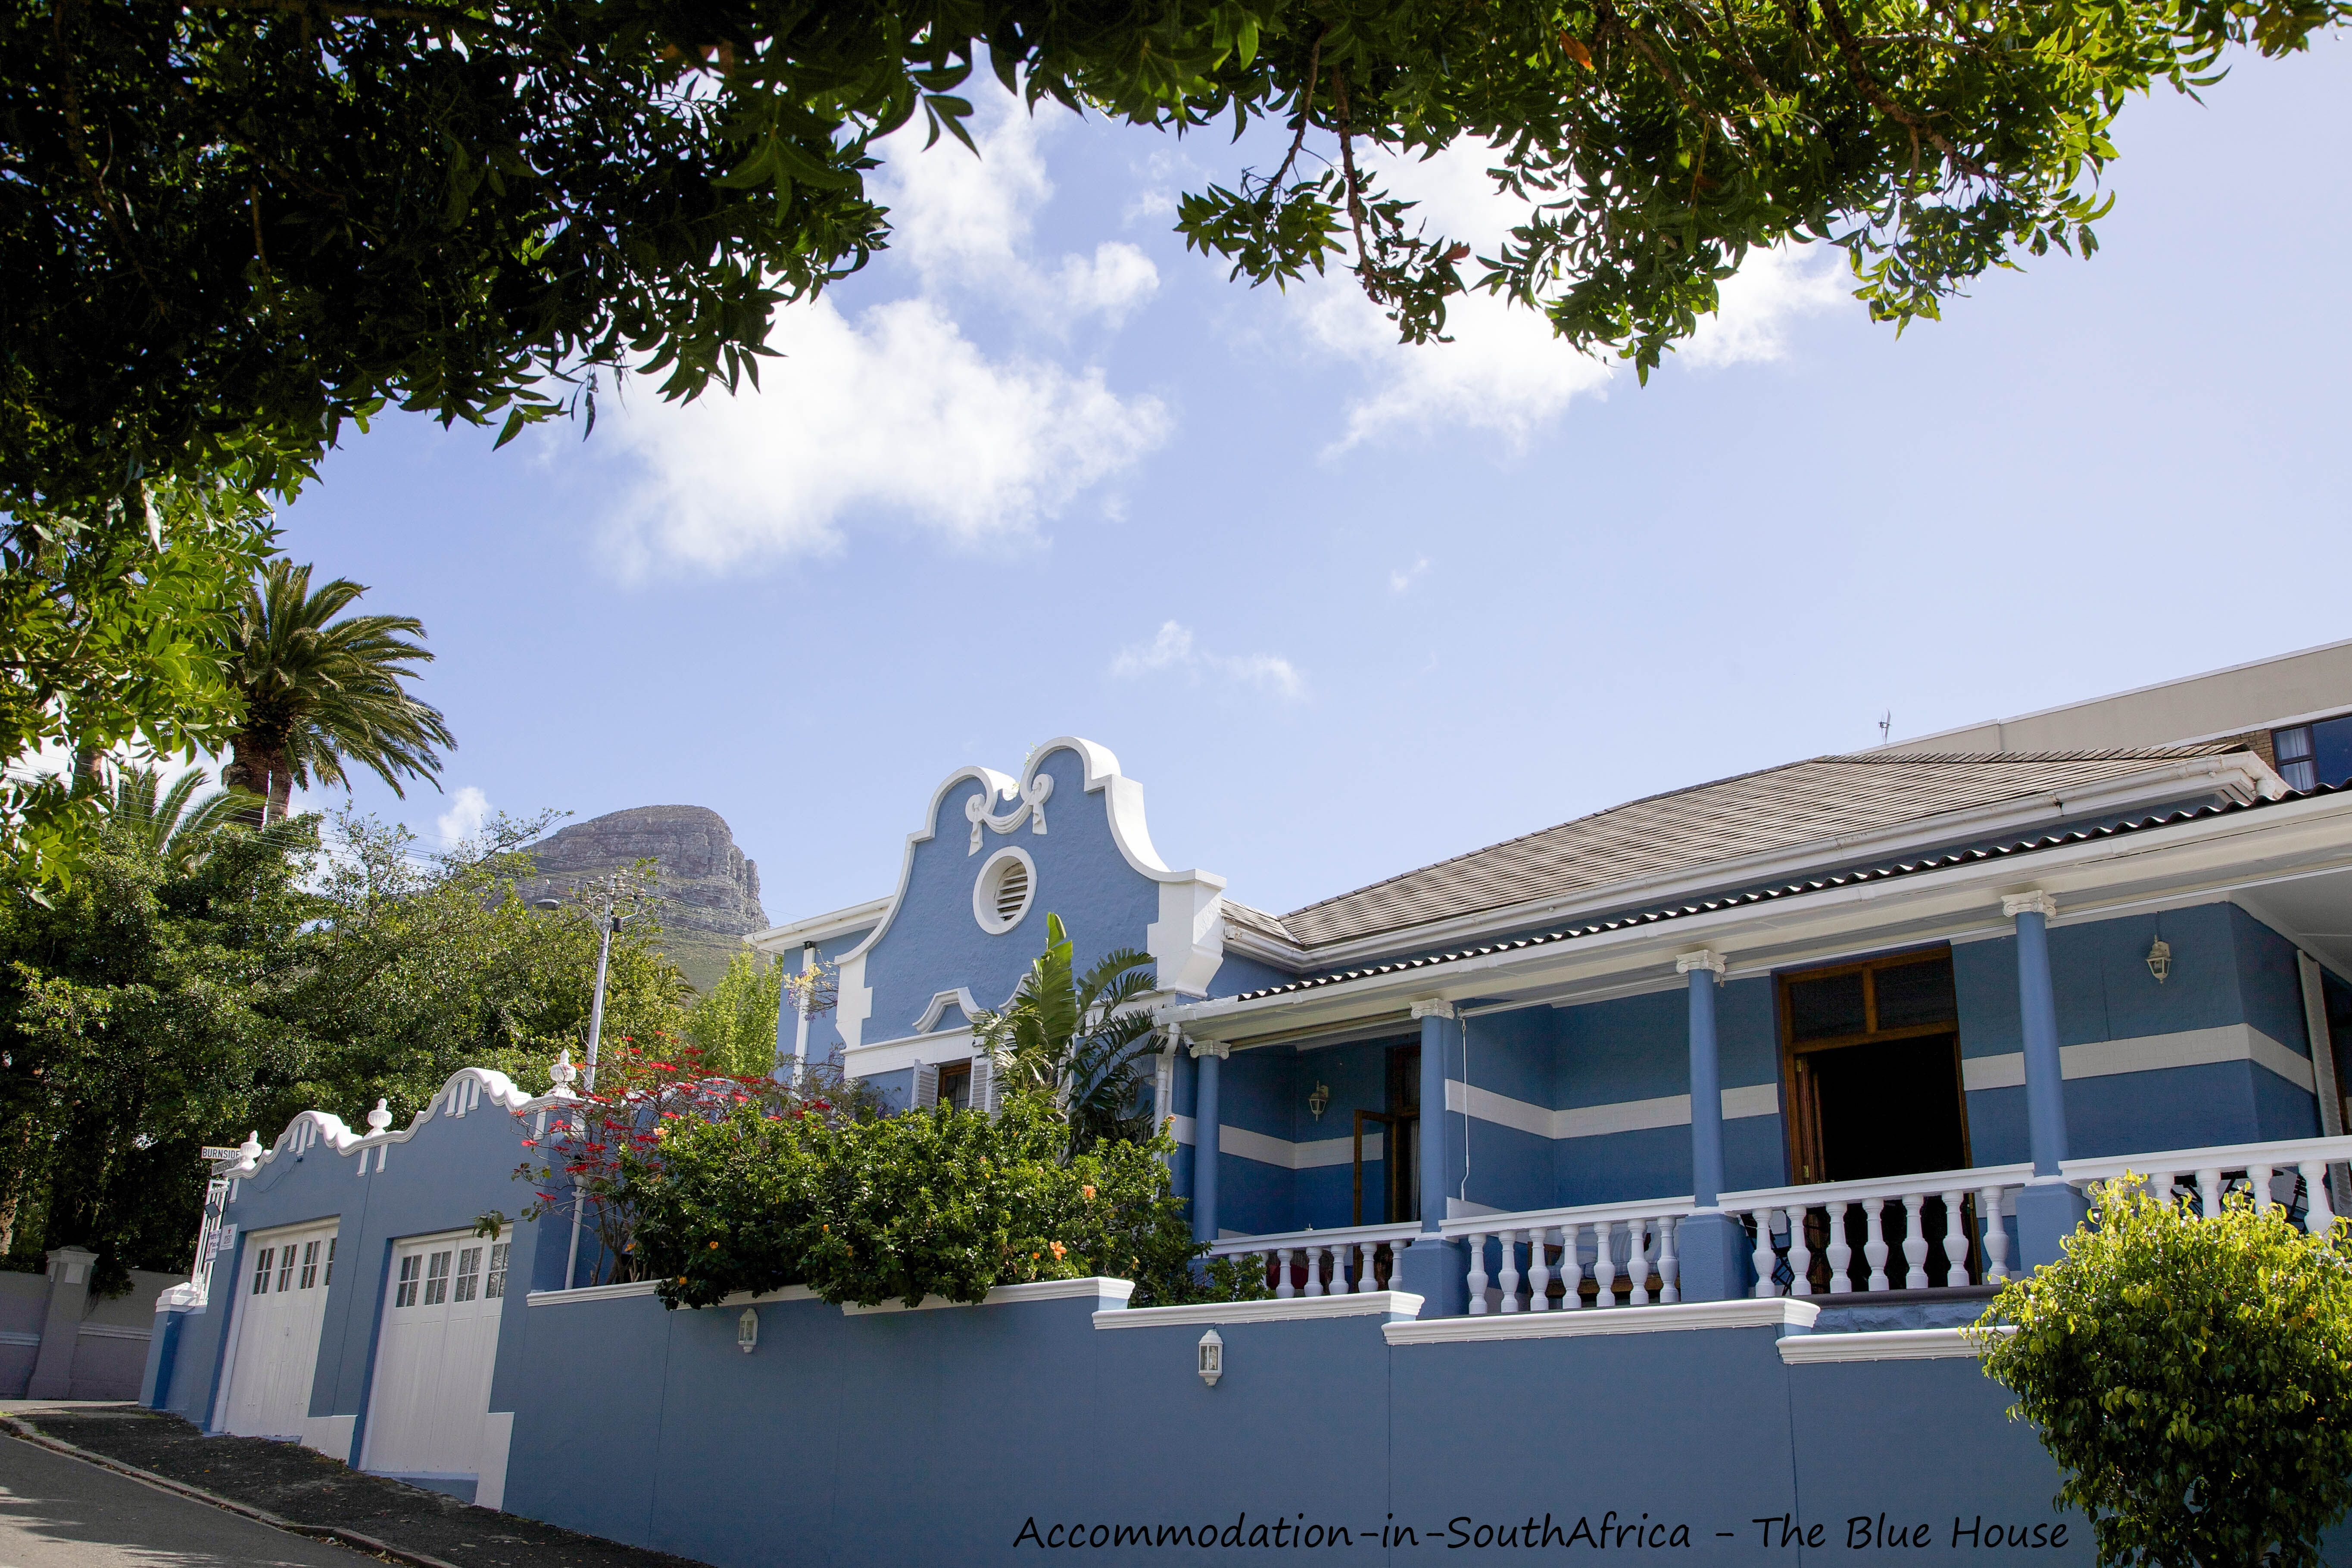 Cape Town Accommodation. Accommodation in Cape Town. The Blue House Guest House. Guest House accommodation. Cape Town Guest House. The Blue House.